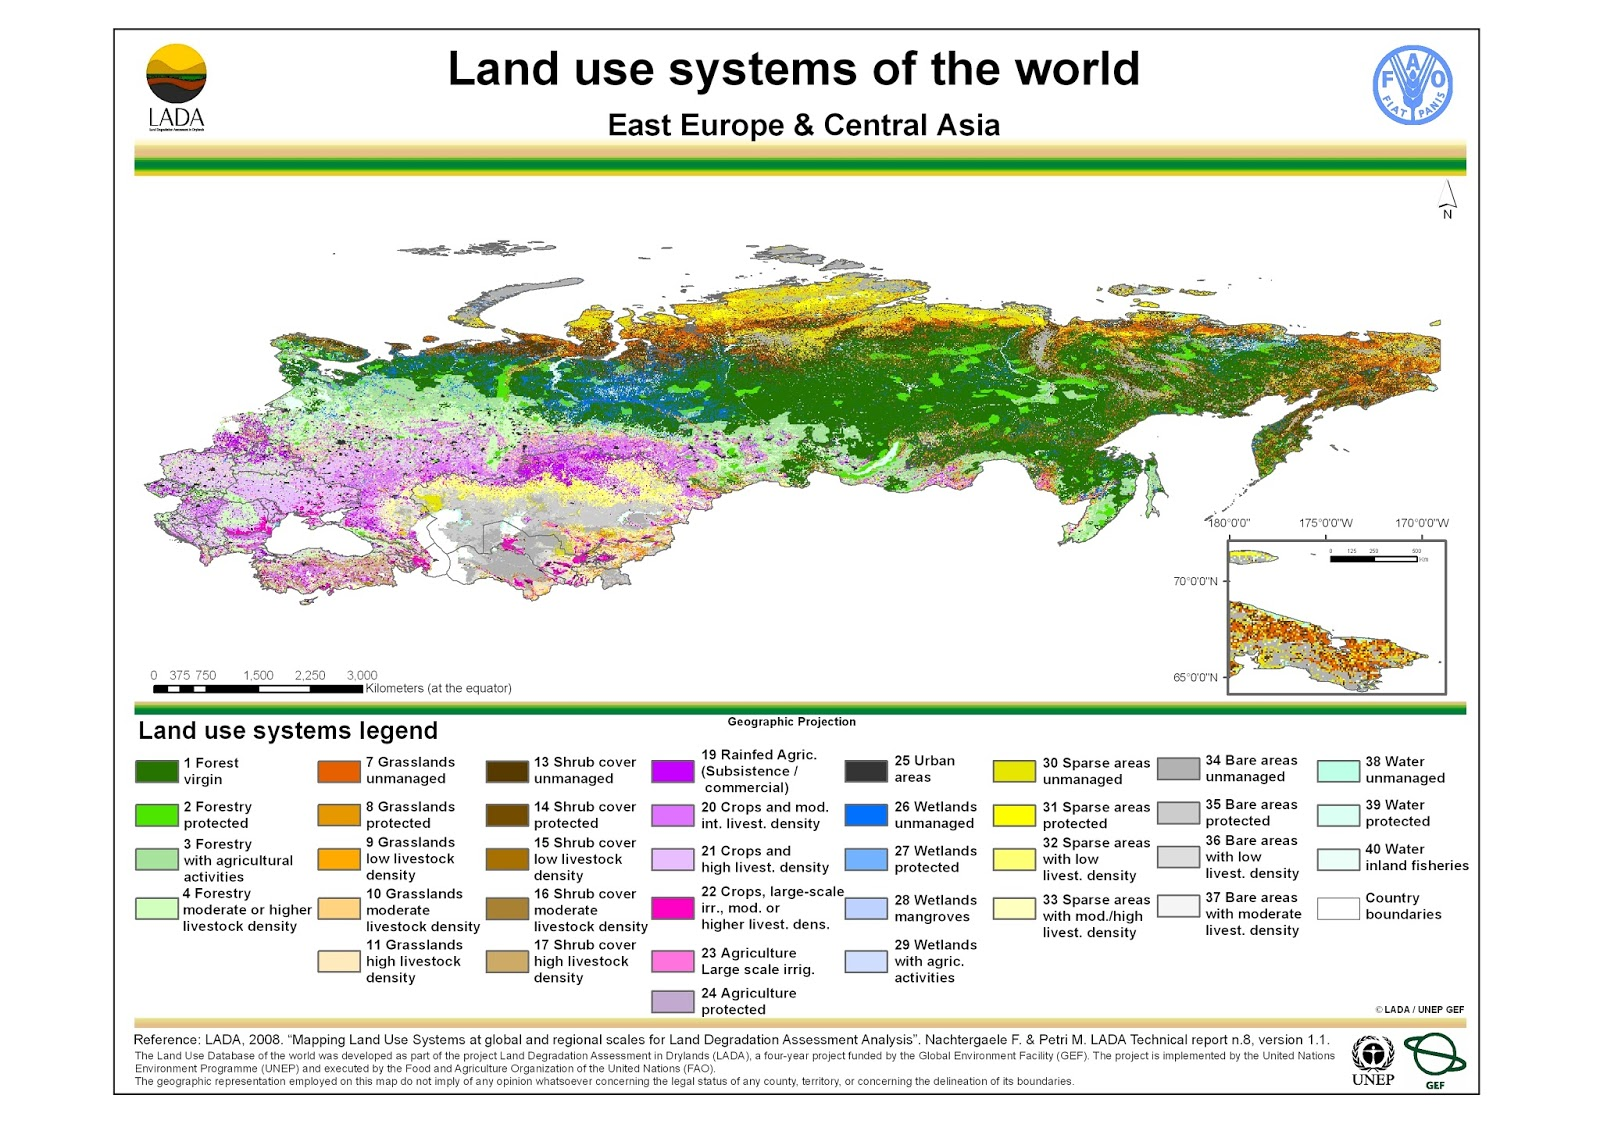 East Europe: Land use map